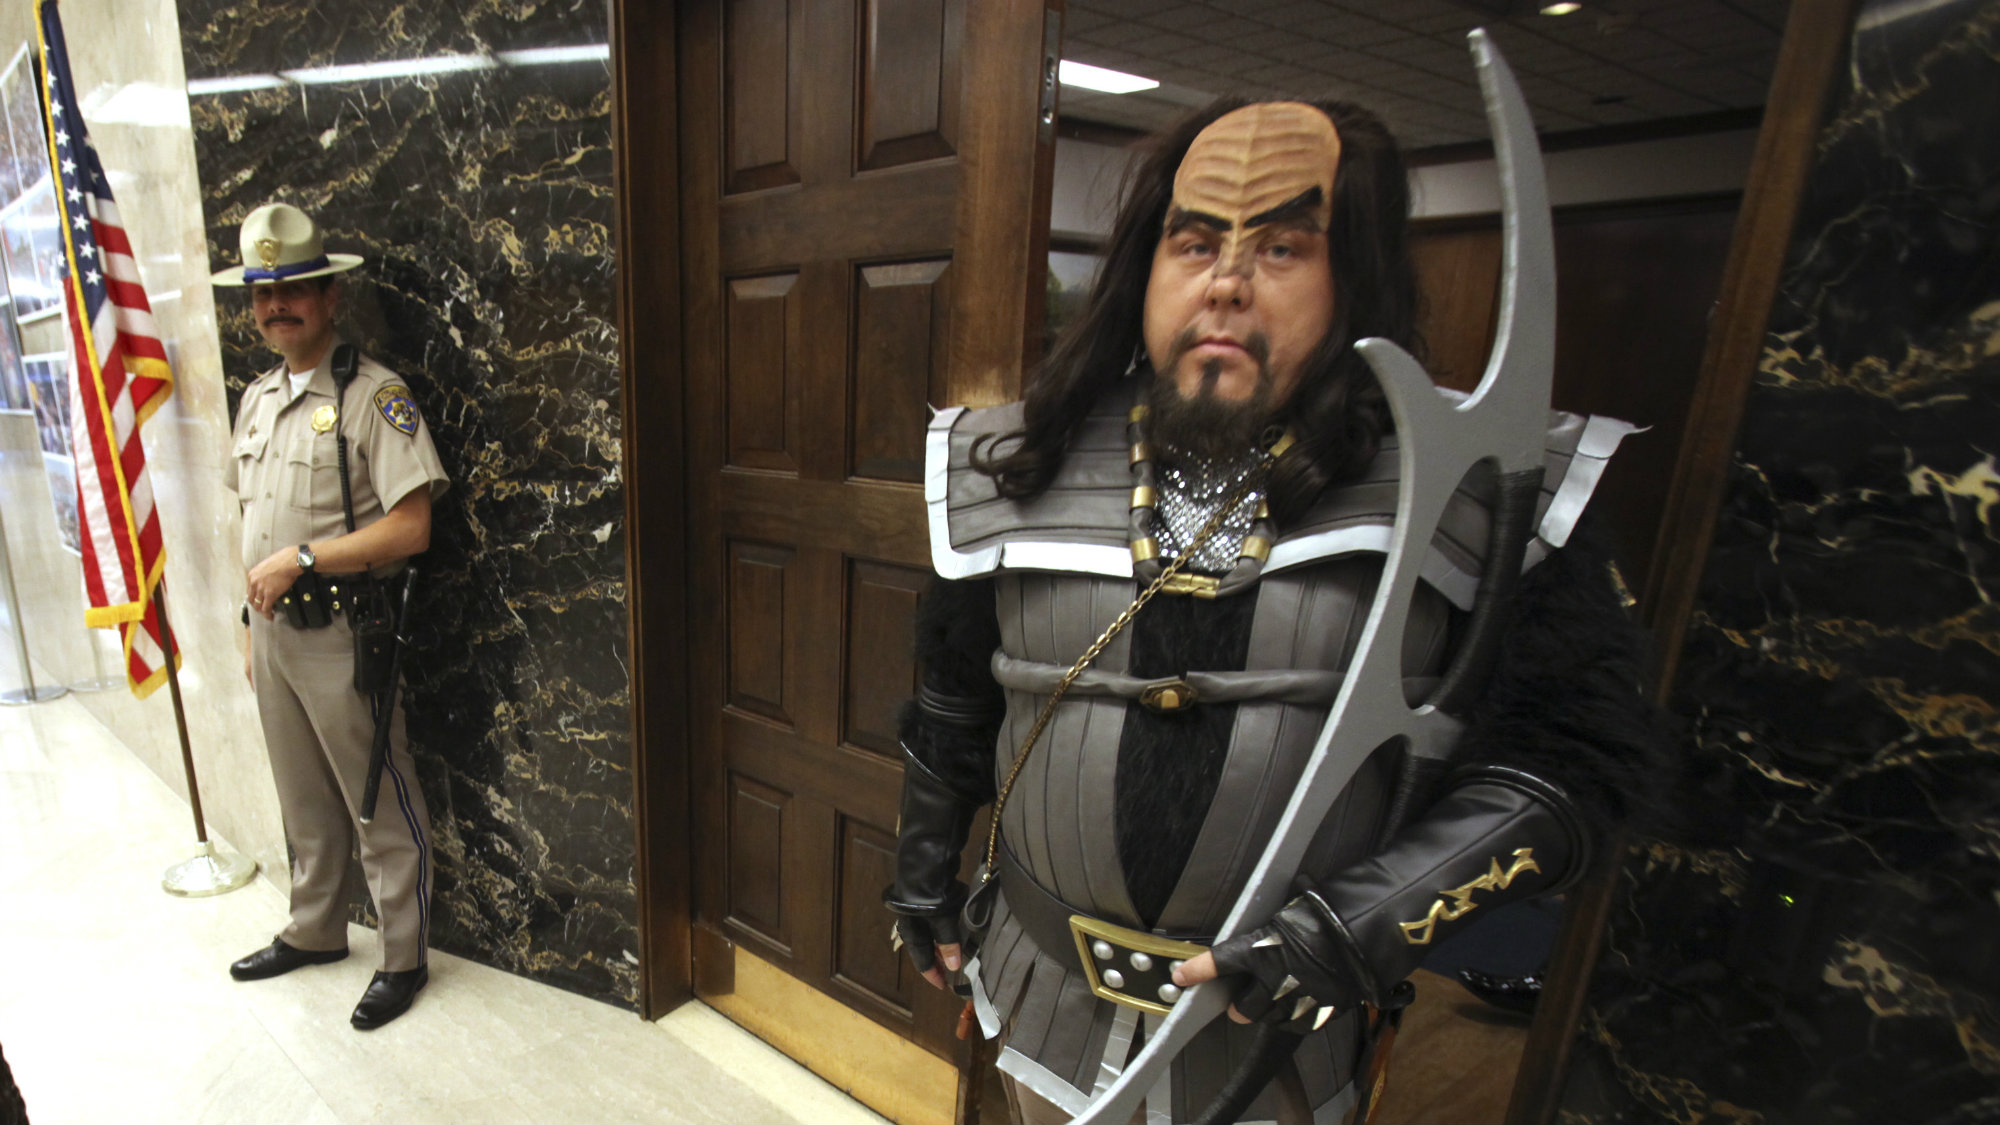 Dressed as a Klingon Commanders, of Star Trek fame, Chris Mumma, gets a glance from California Highway Patrol officer Robert Stevenson, as he leaves the Governor's office at the state Capitol in Sacramento, Calif., Wednesday, Sept. 30, 2009.